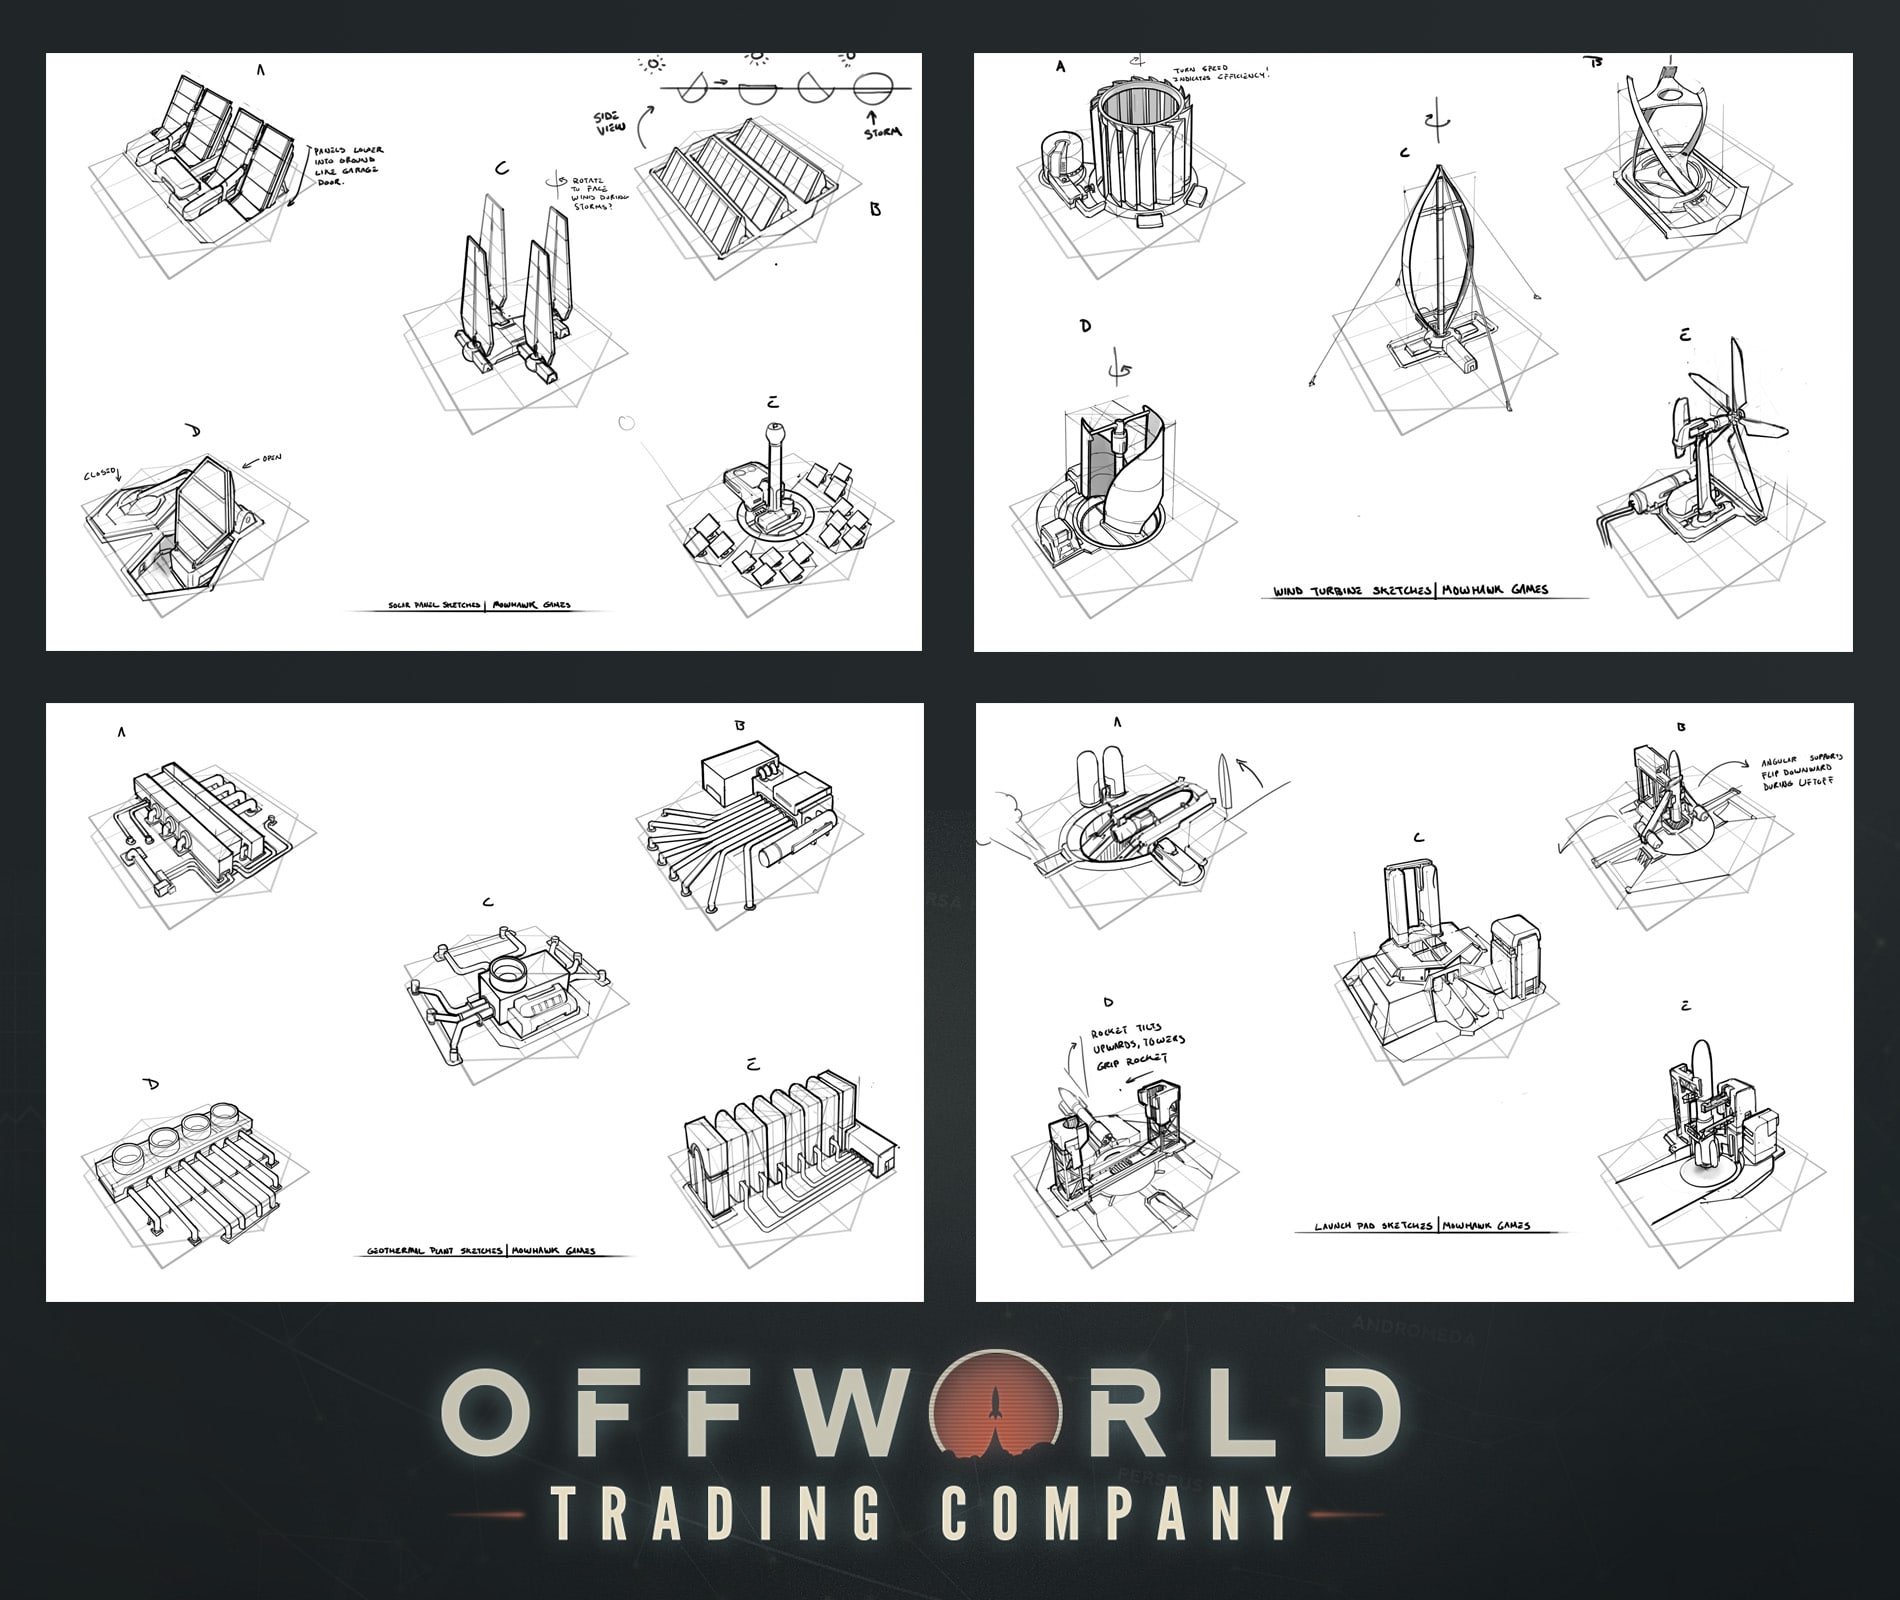 Offworld Trading Company Wallpaper